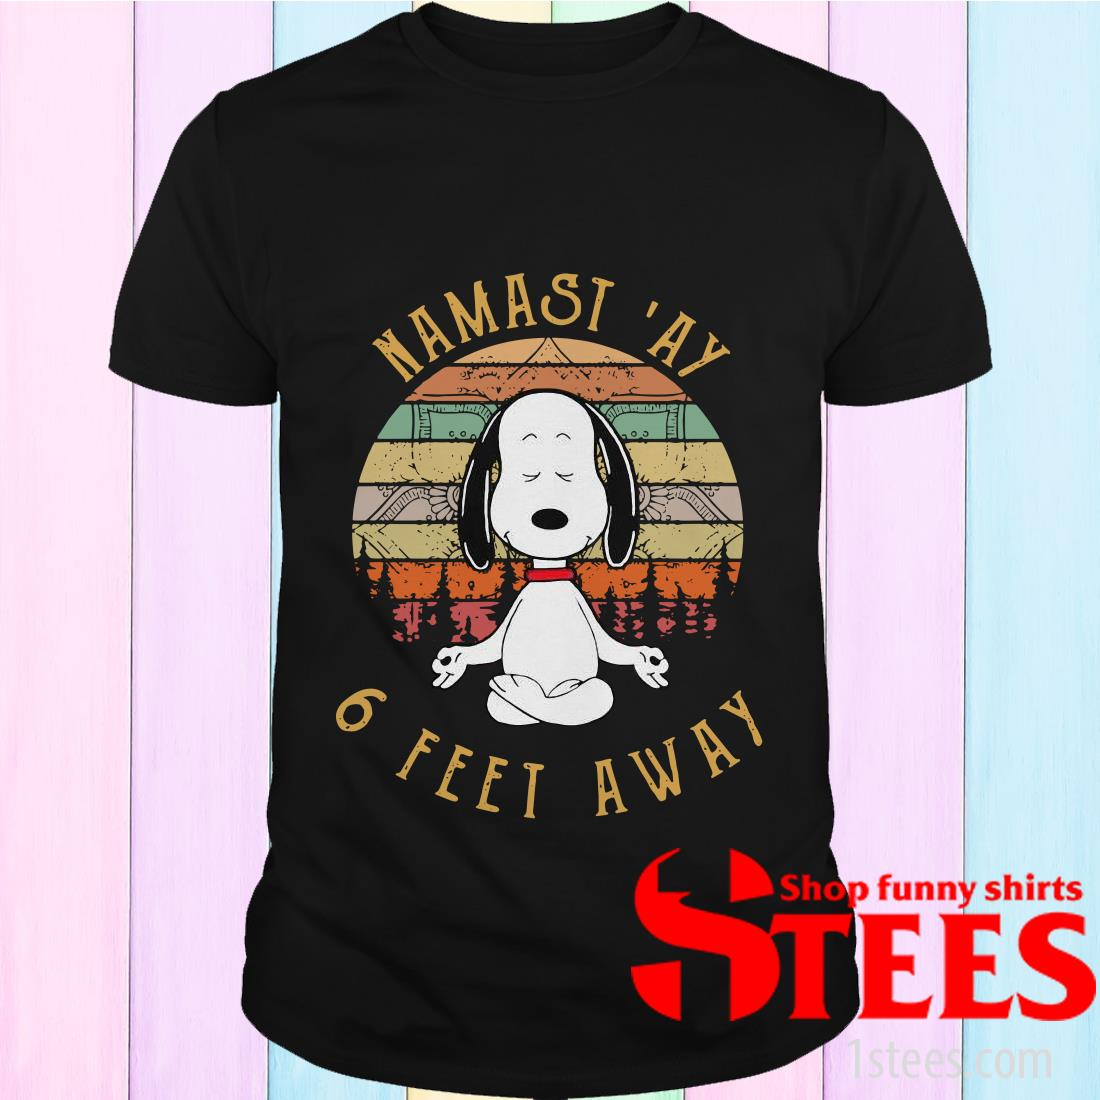 Snoopy Yoga Namast'ay 6 Feet Away Vintage Shirt